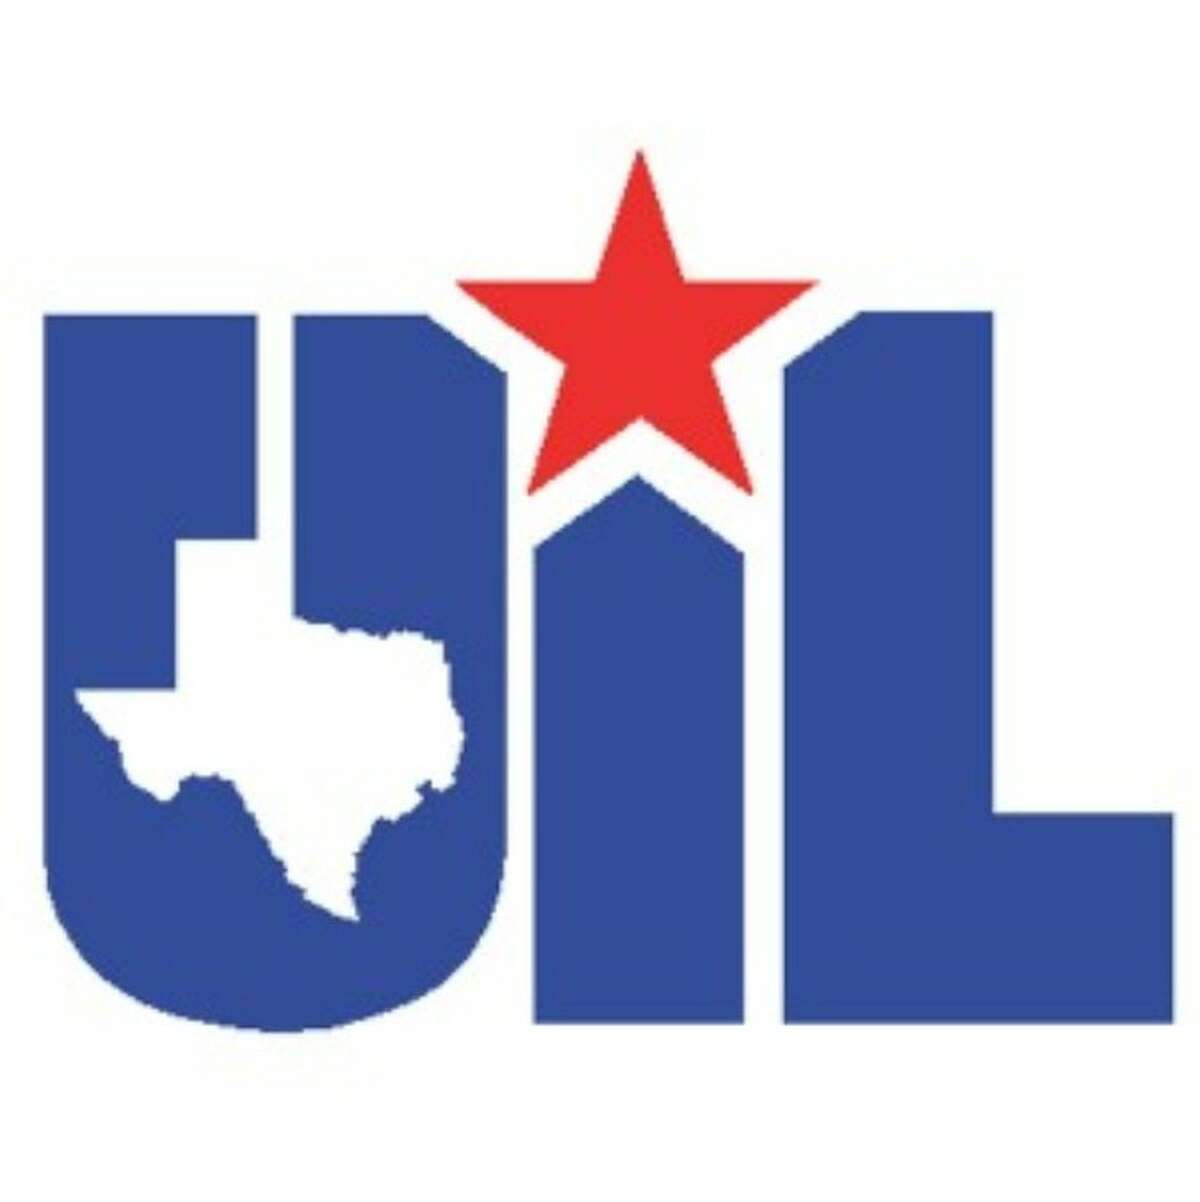 The UIL says schools may now limit fan attendance and capacity at its own venues.